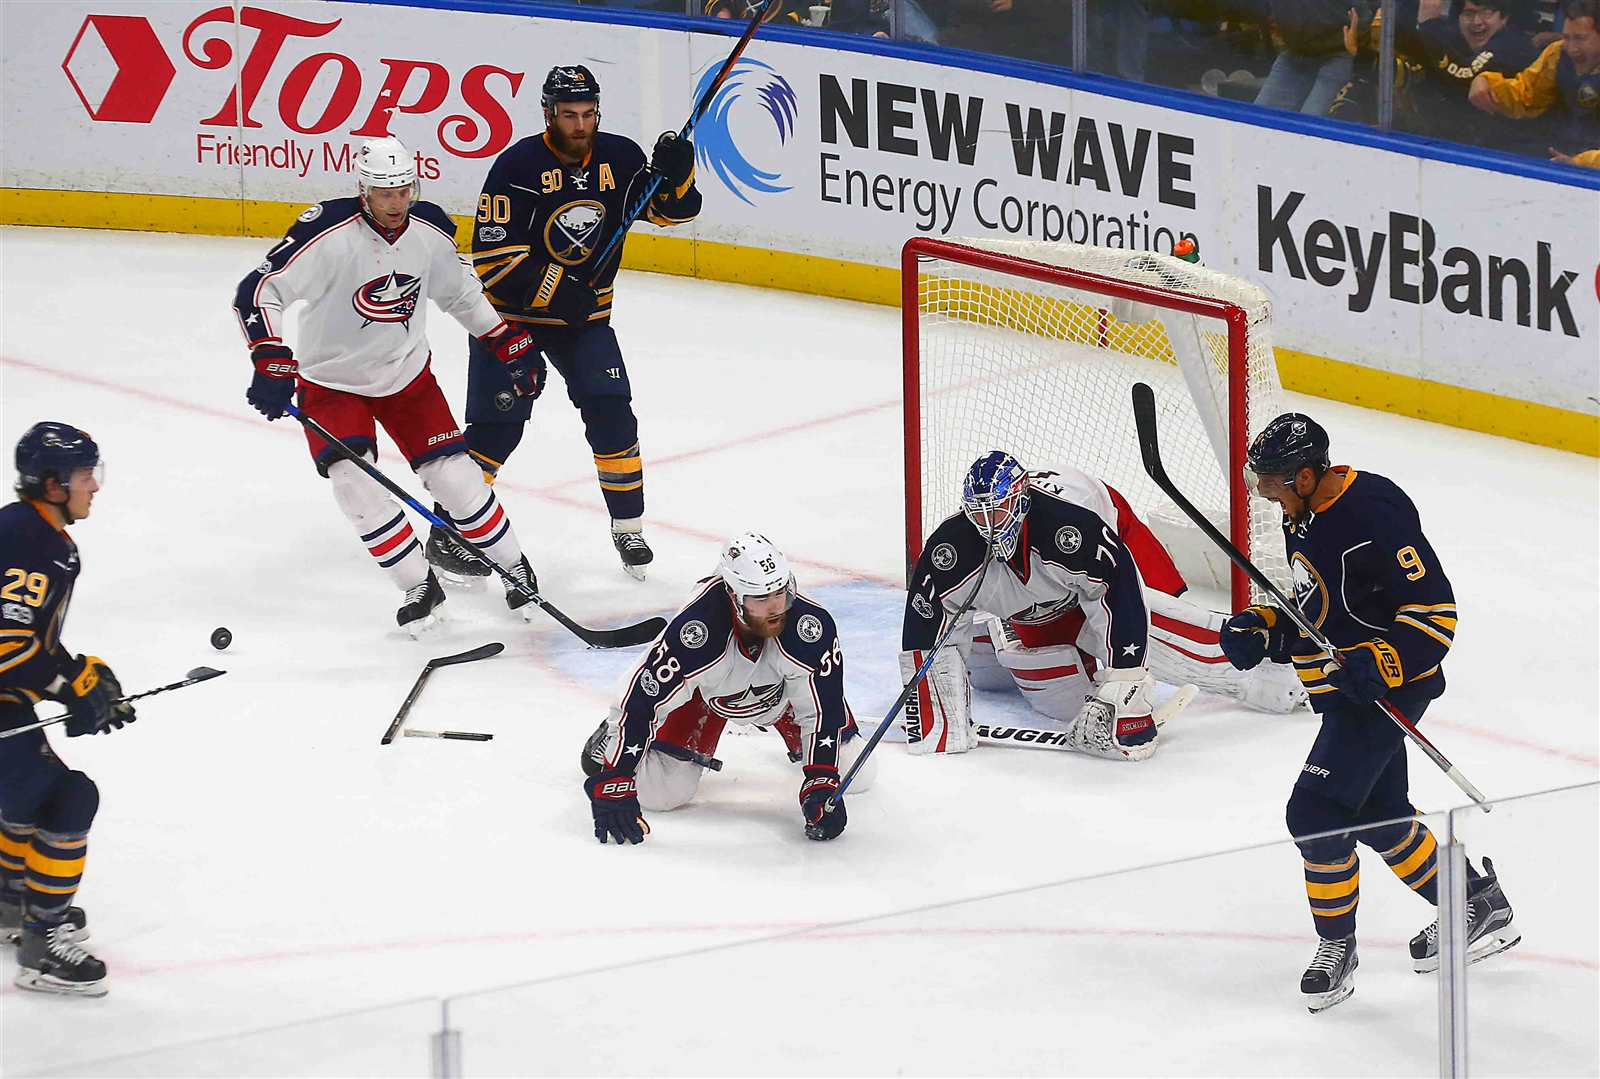 Evander Kane (9) and the Sabres stormed back to beat Columbus earlier this month. (John Hickey/Buffalo News)